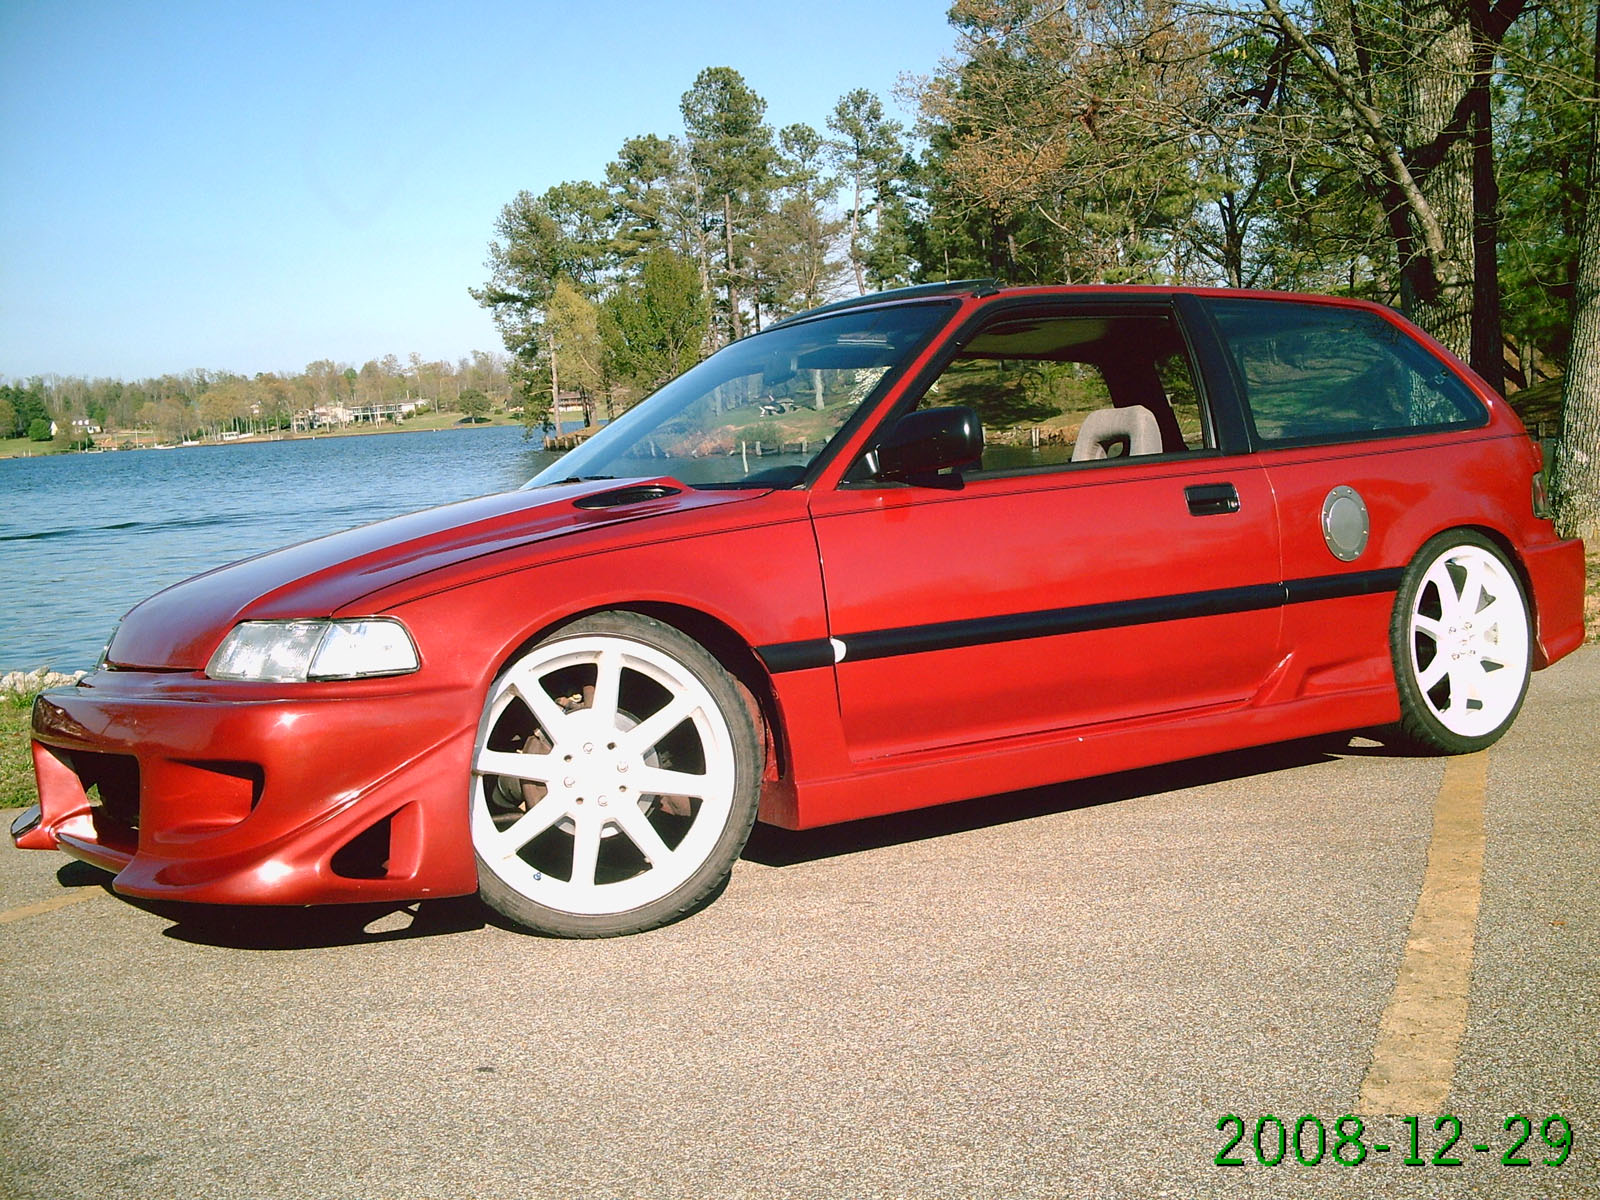 1991 Honda Civic si For Sale | Medina Tennessee